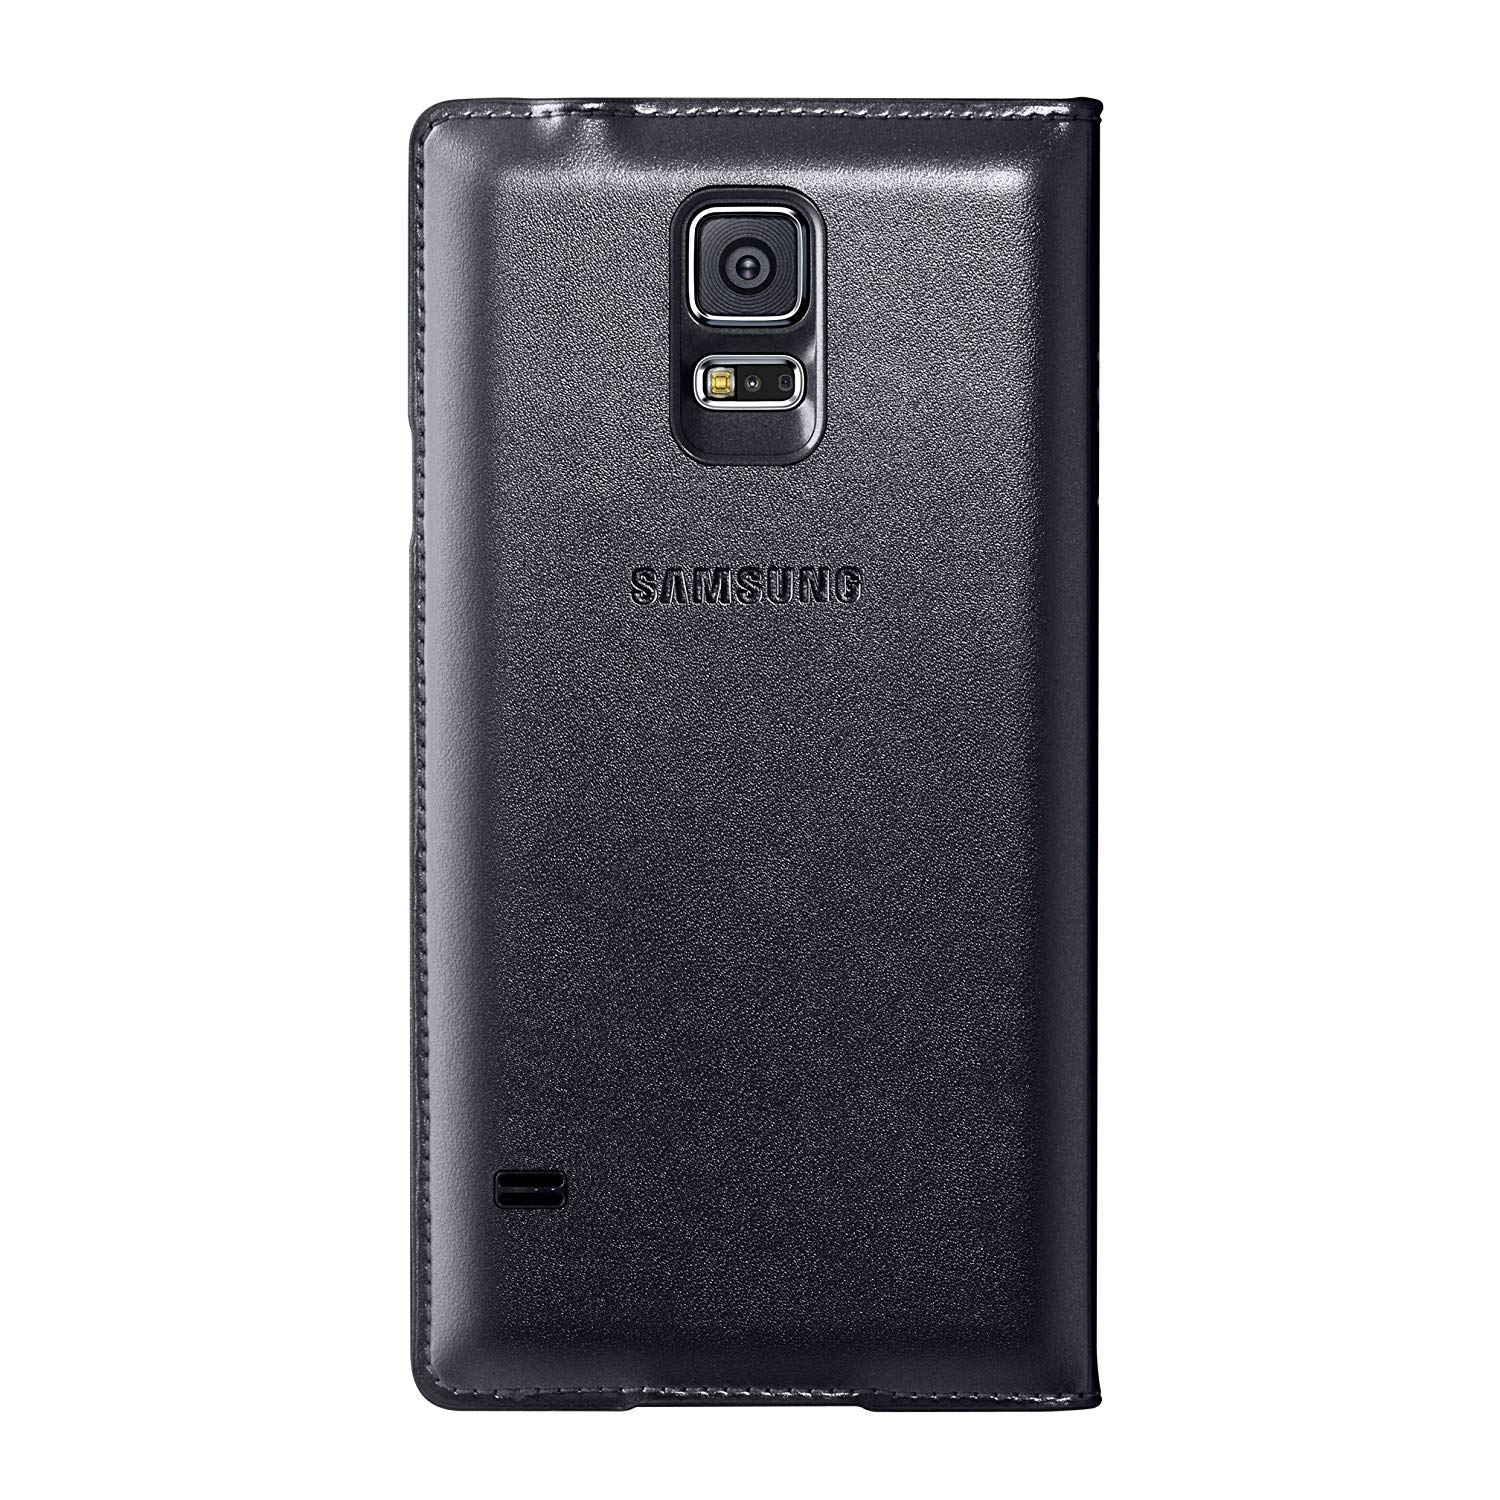 best website 62bf3 d2765 Samsung Galaxy S5 Case S View Flip Cover Folio, Black (Bulk Packaging)